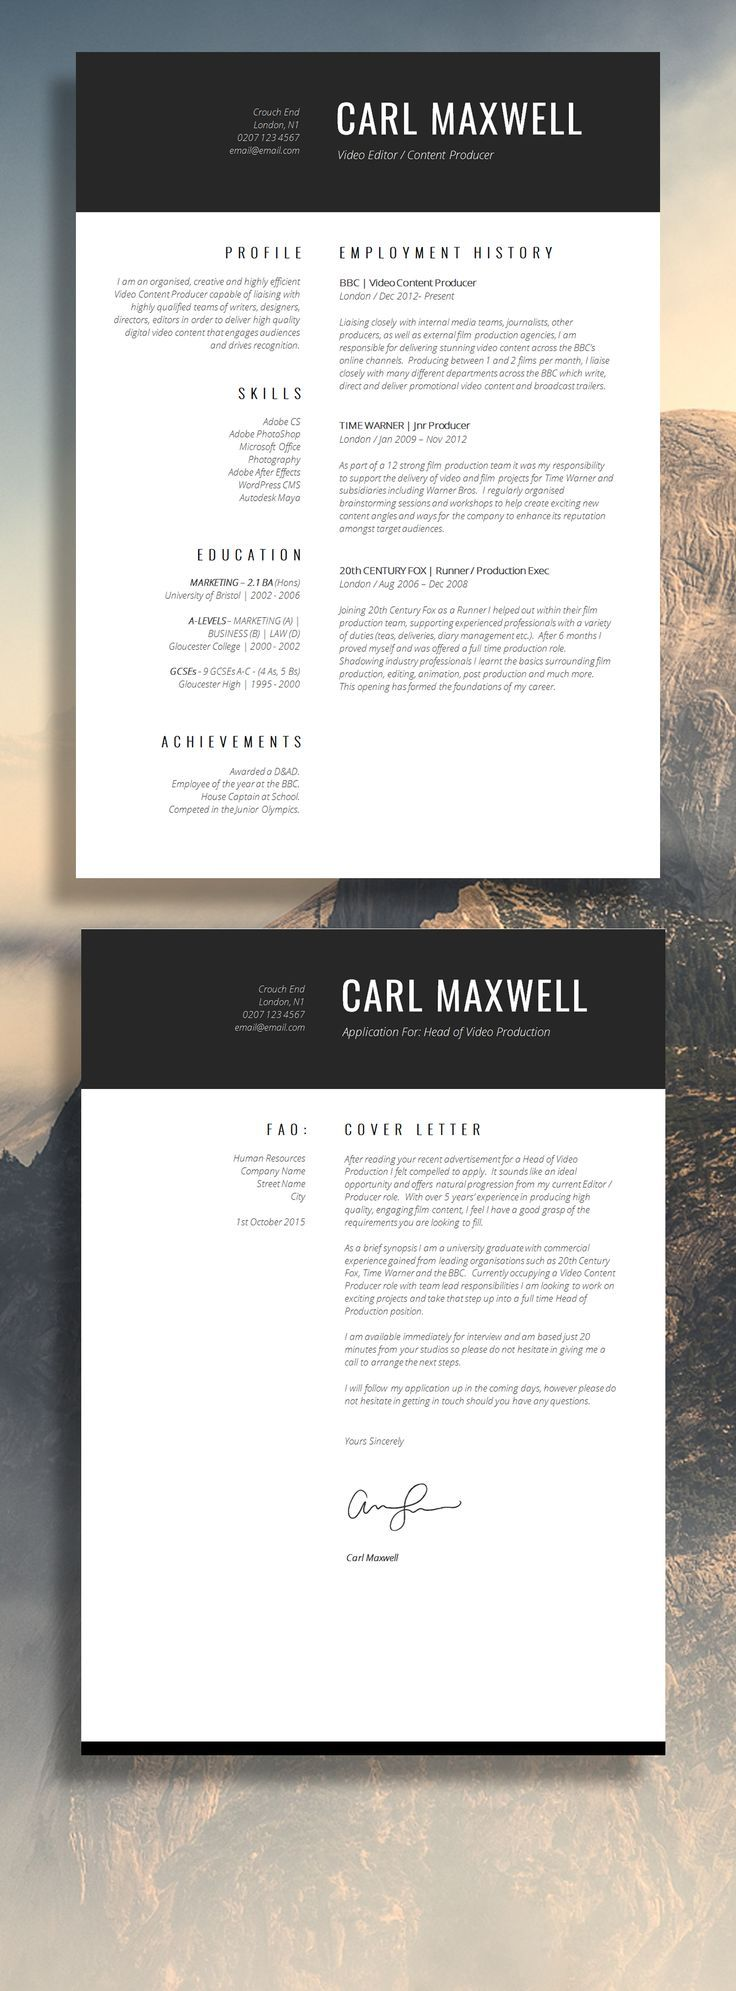 Professional Single Page Resume Template - Get that job!